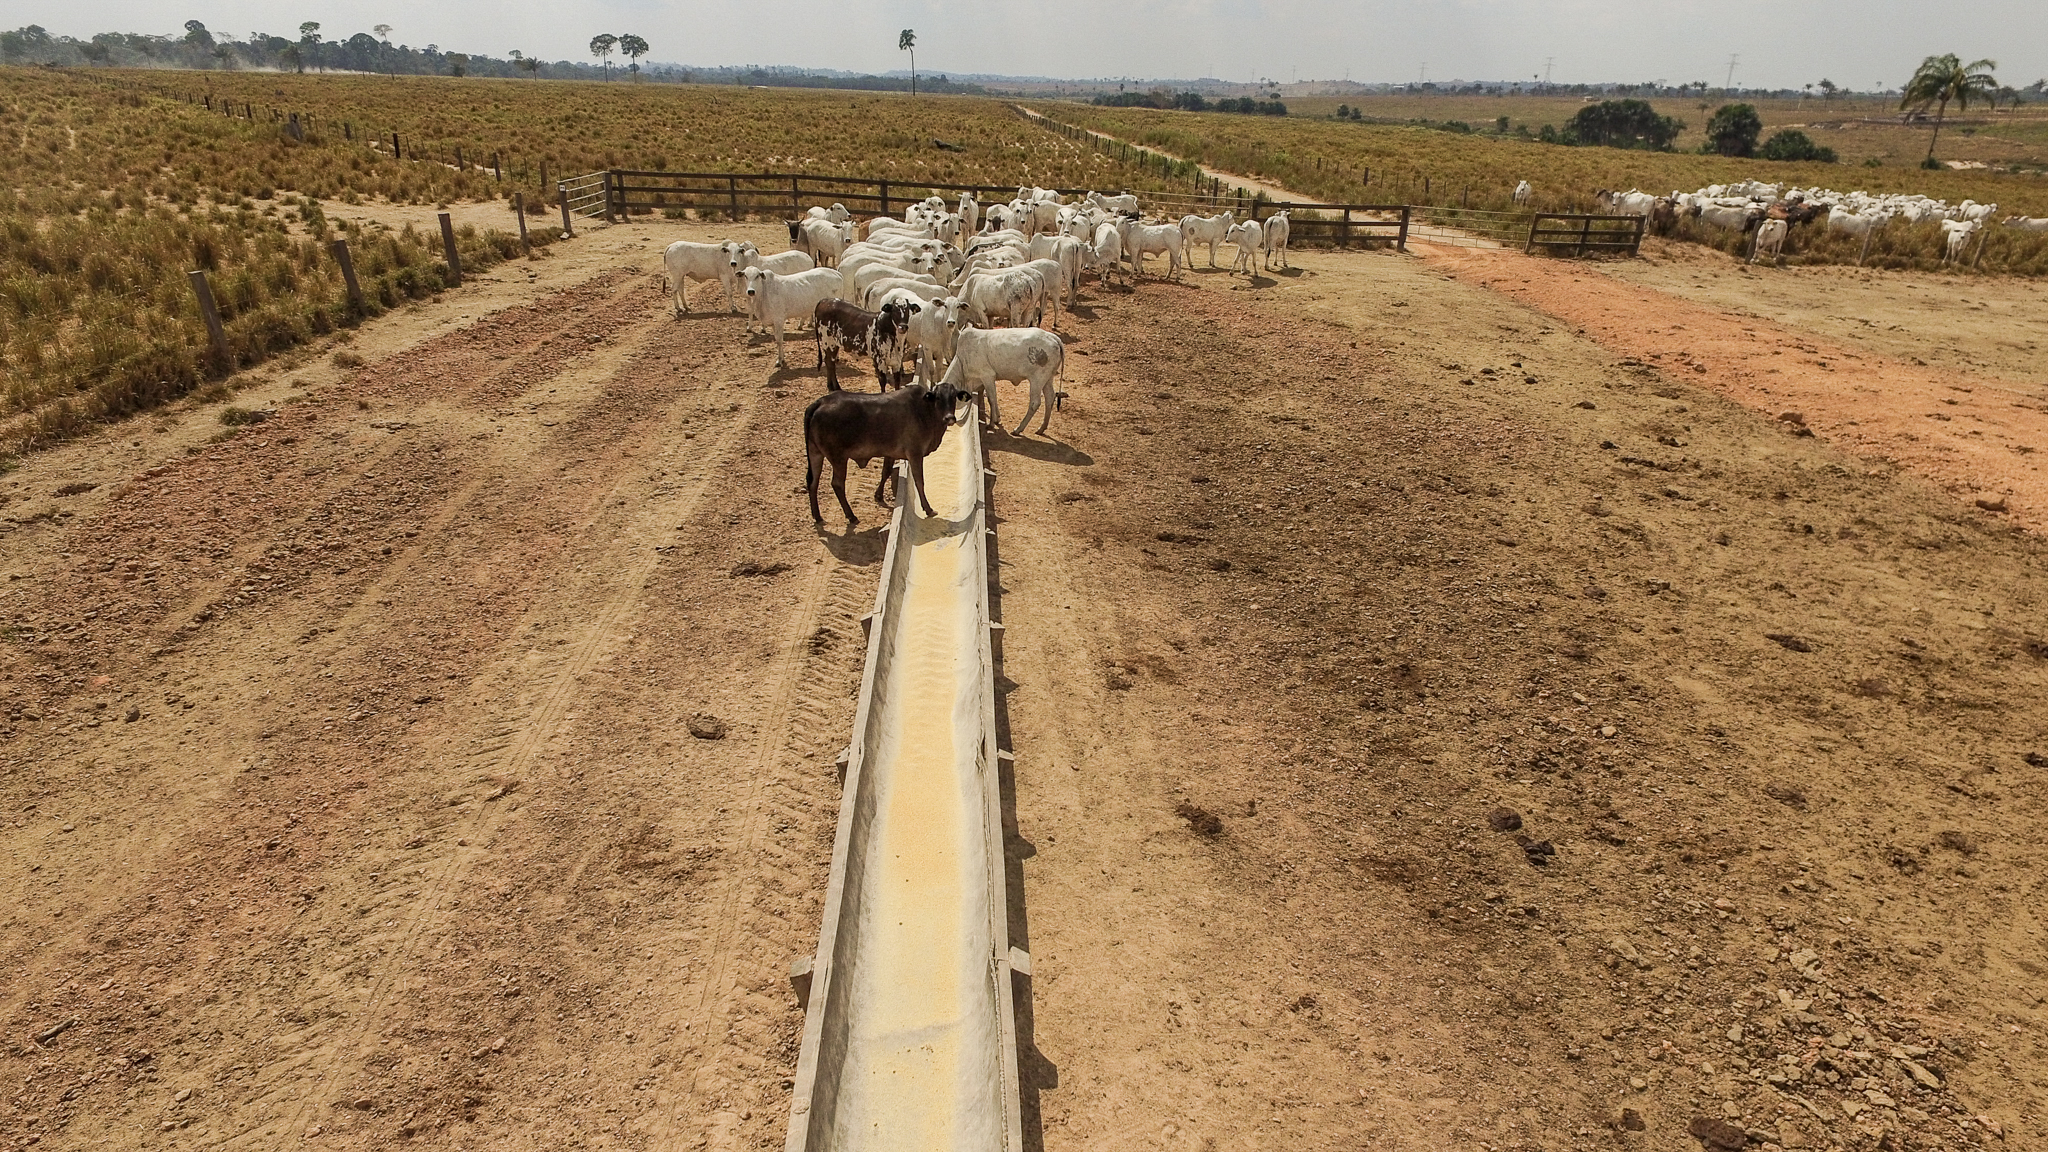 At the feeding troughs on the Nossa Senhora Aparecida ranch, the white cows are a breed called Nelore. The brown and black cows are Aberdeen angus, which is a cross between Nelore and Angus.Photograph by Christina Selby